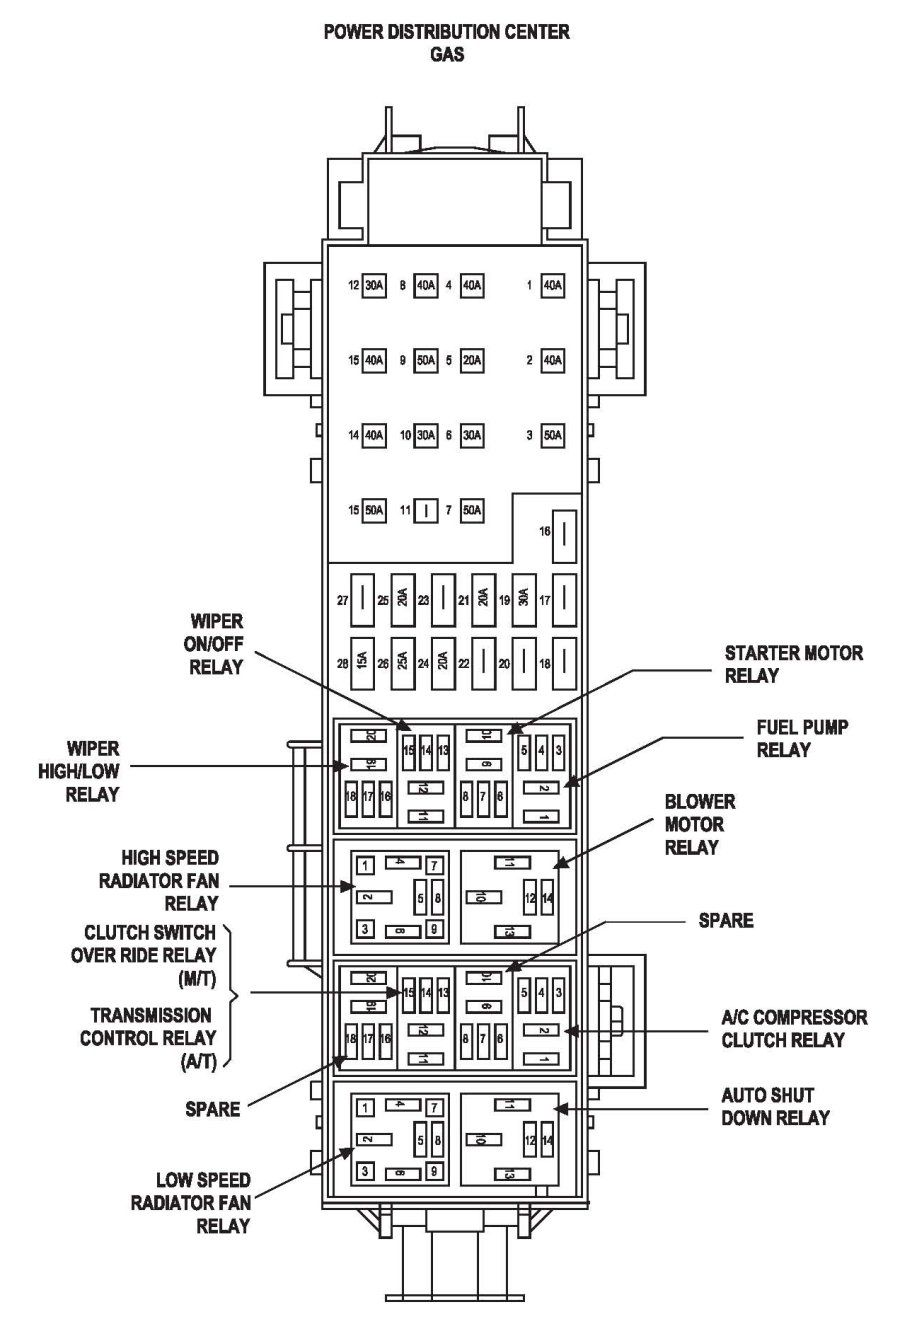 b3536c3739783eb19f827744cc42c3c4 jeep liberty fuse box diagram image details jeep liberty 2006 Jeep Grand Cherokee Laredo Fuse Box Diagram at creativeand.co